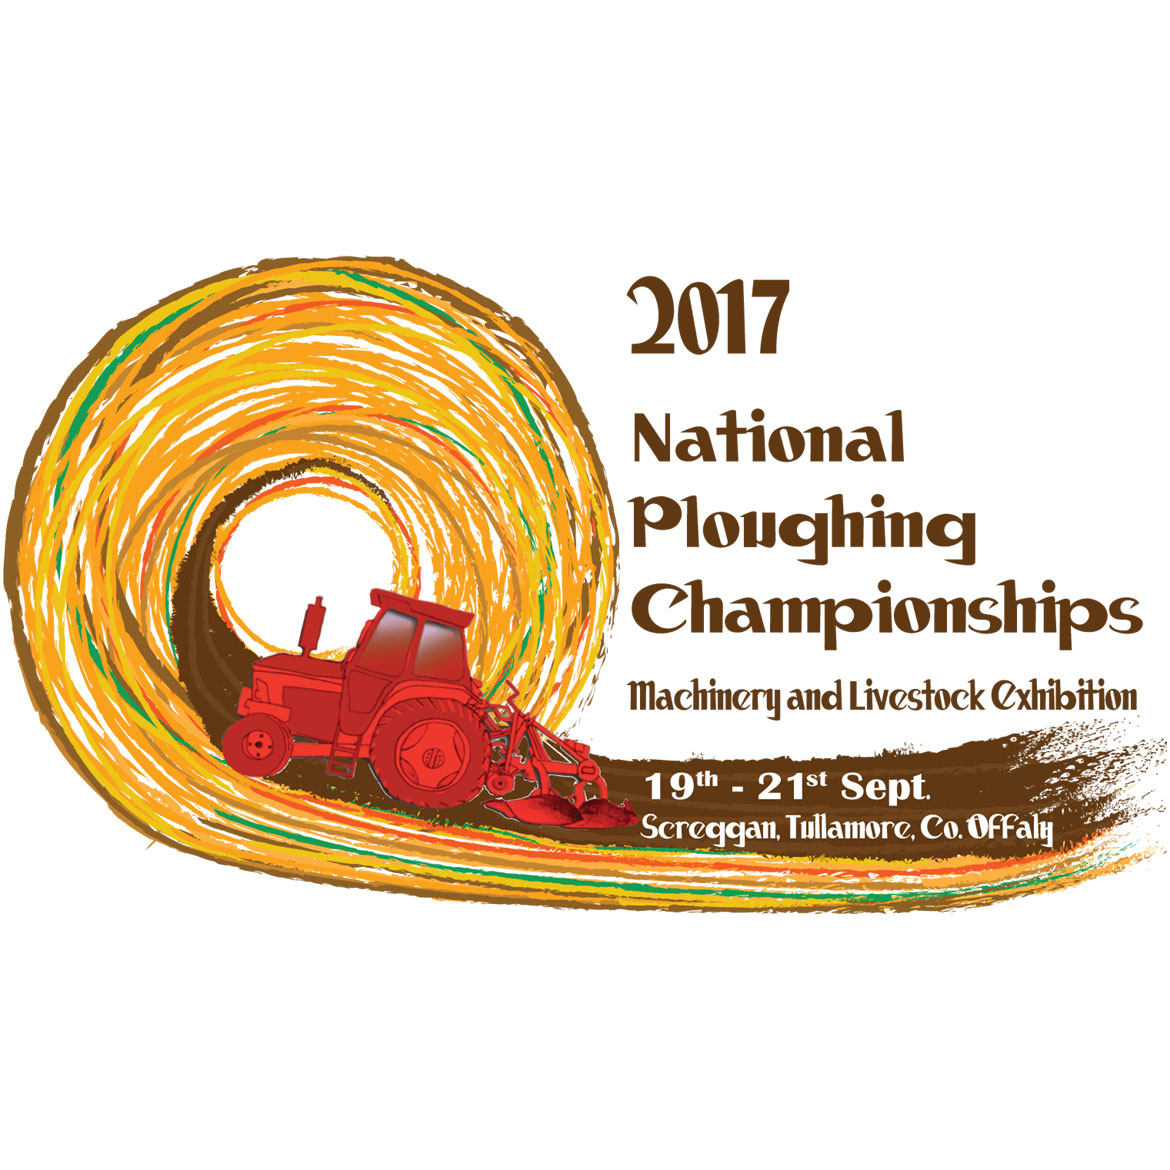 national ploughing - Ploughing Championship Publication Launch